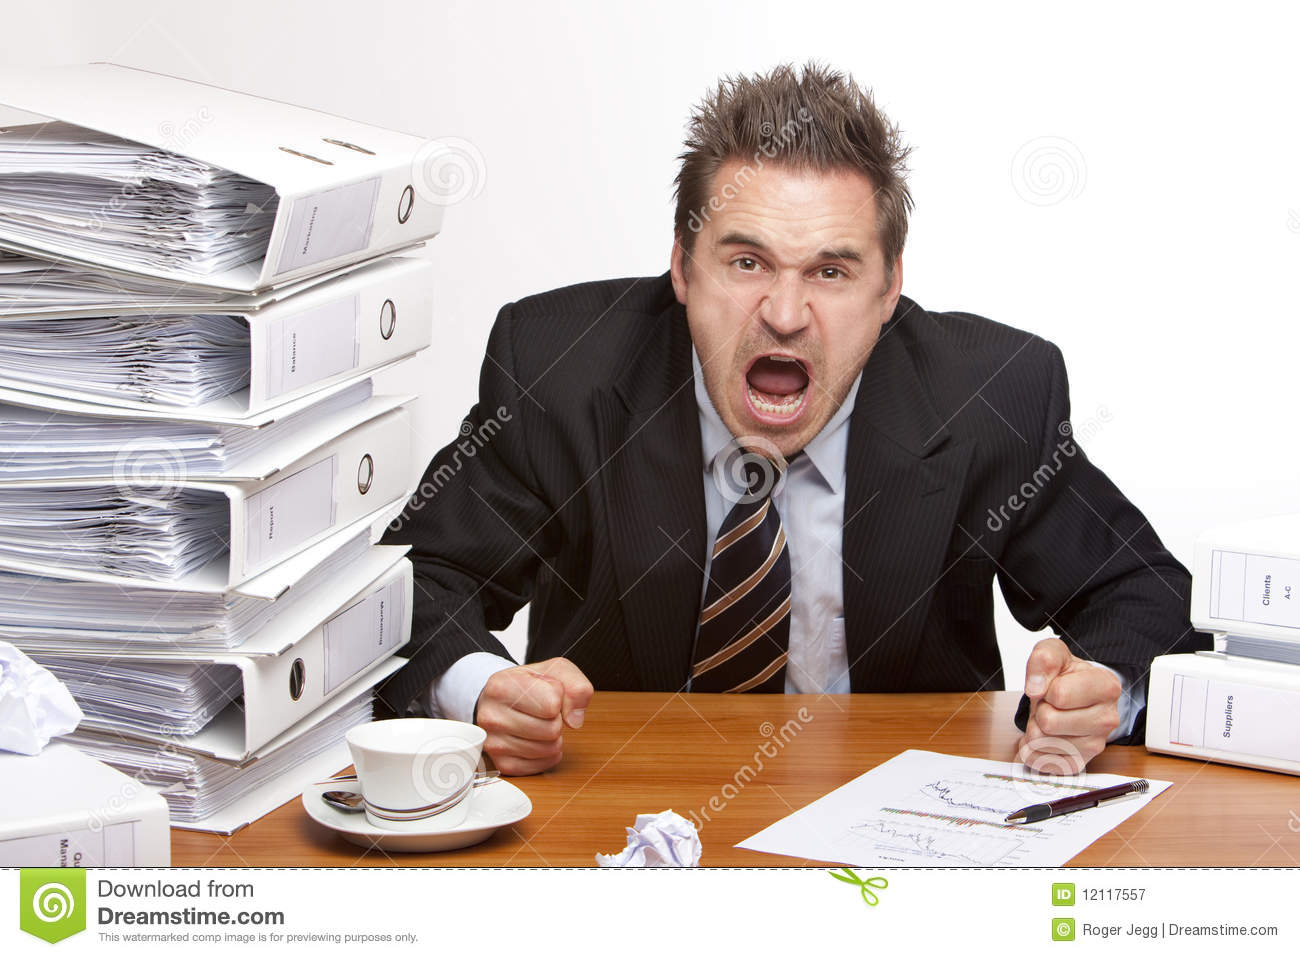 Stressed business man screams frustrated in office